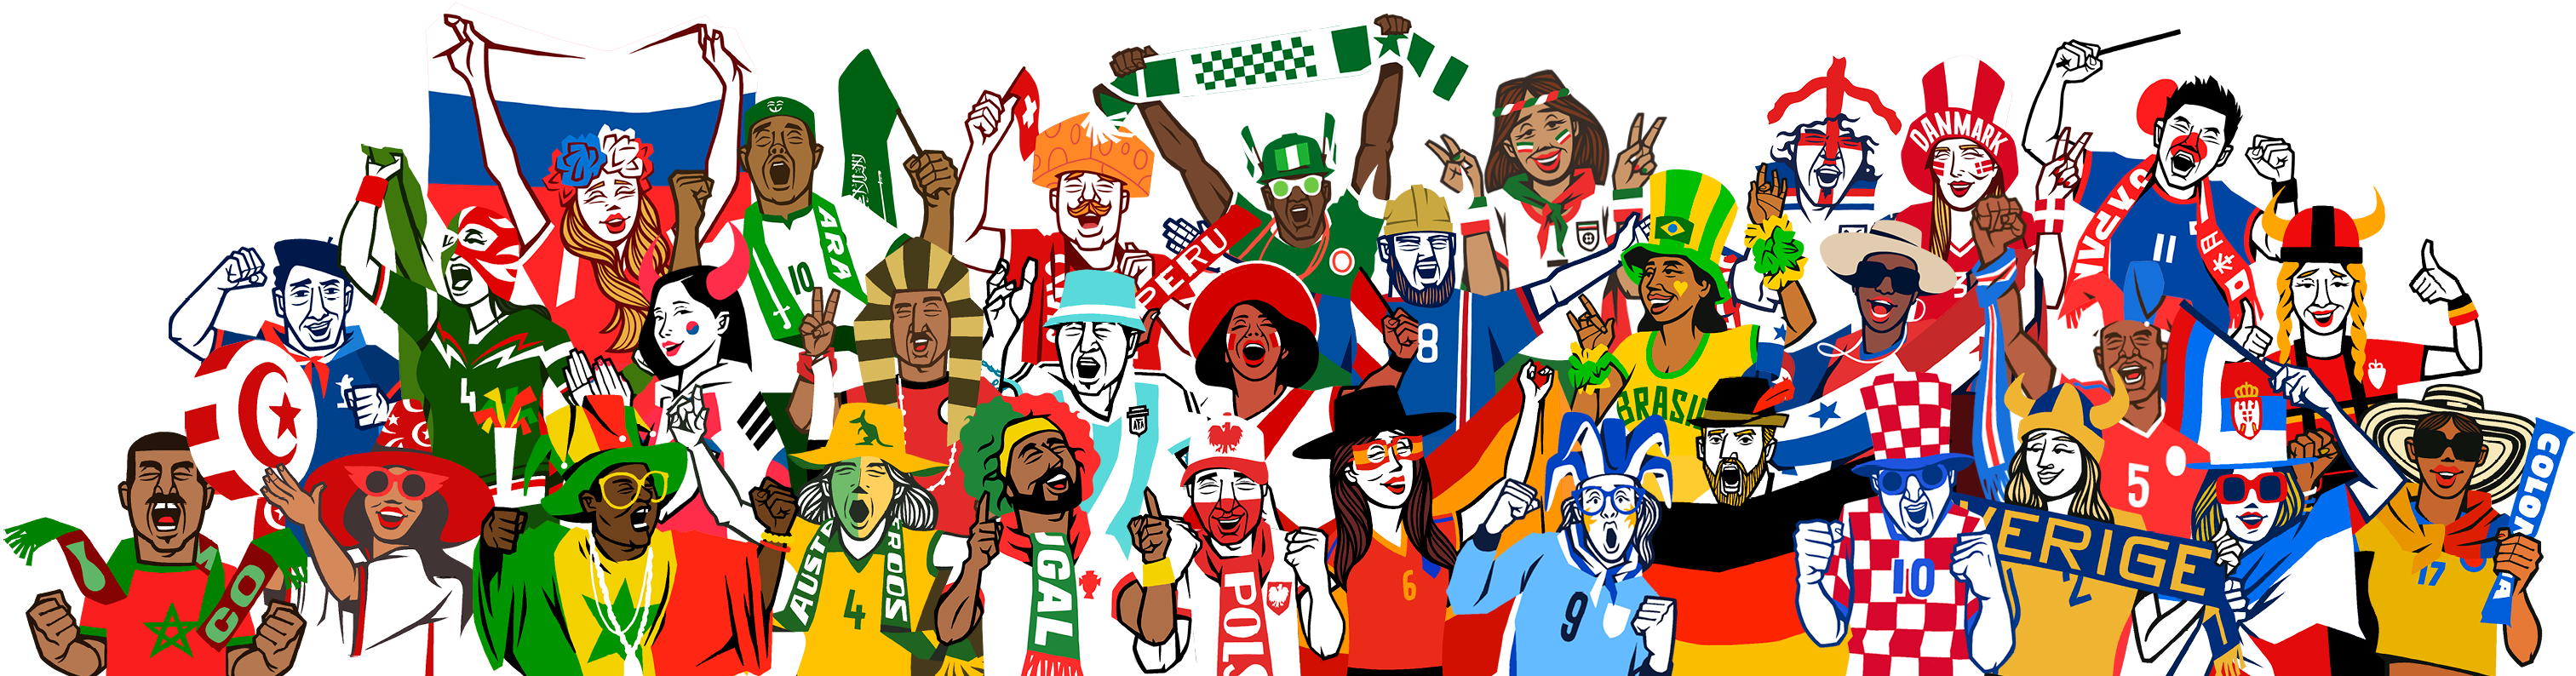 Soccer fans from around the world